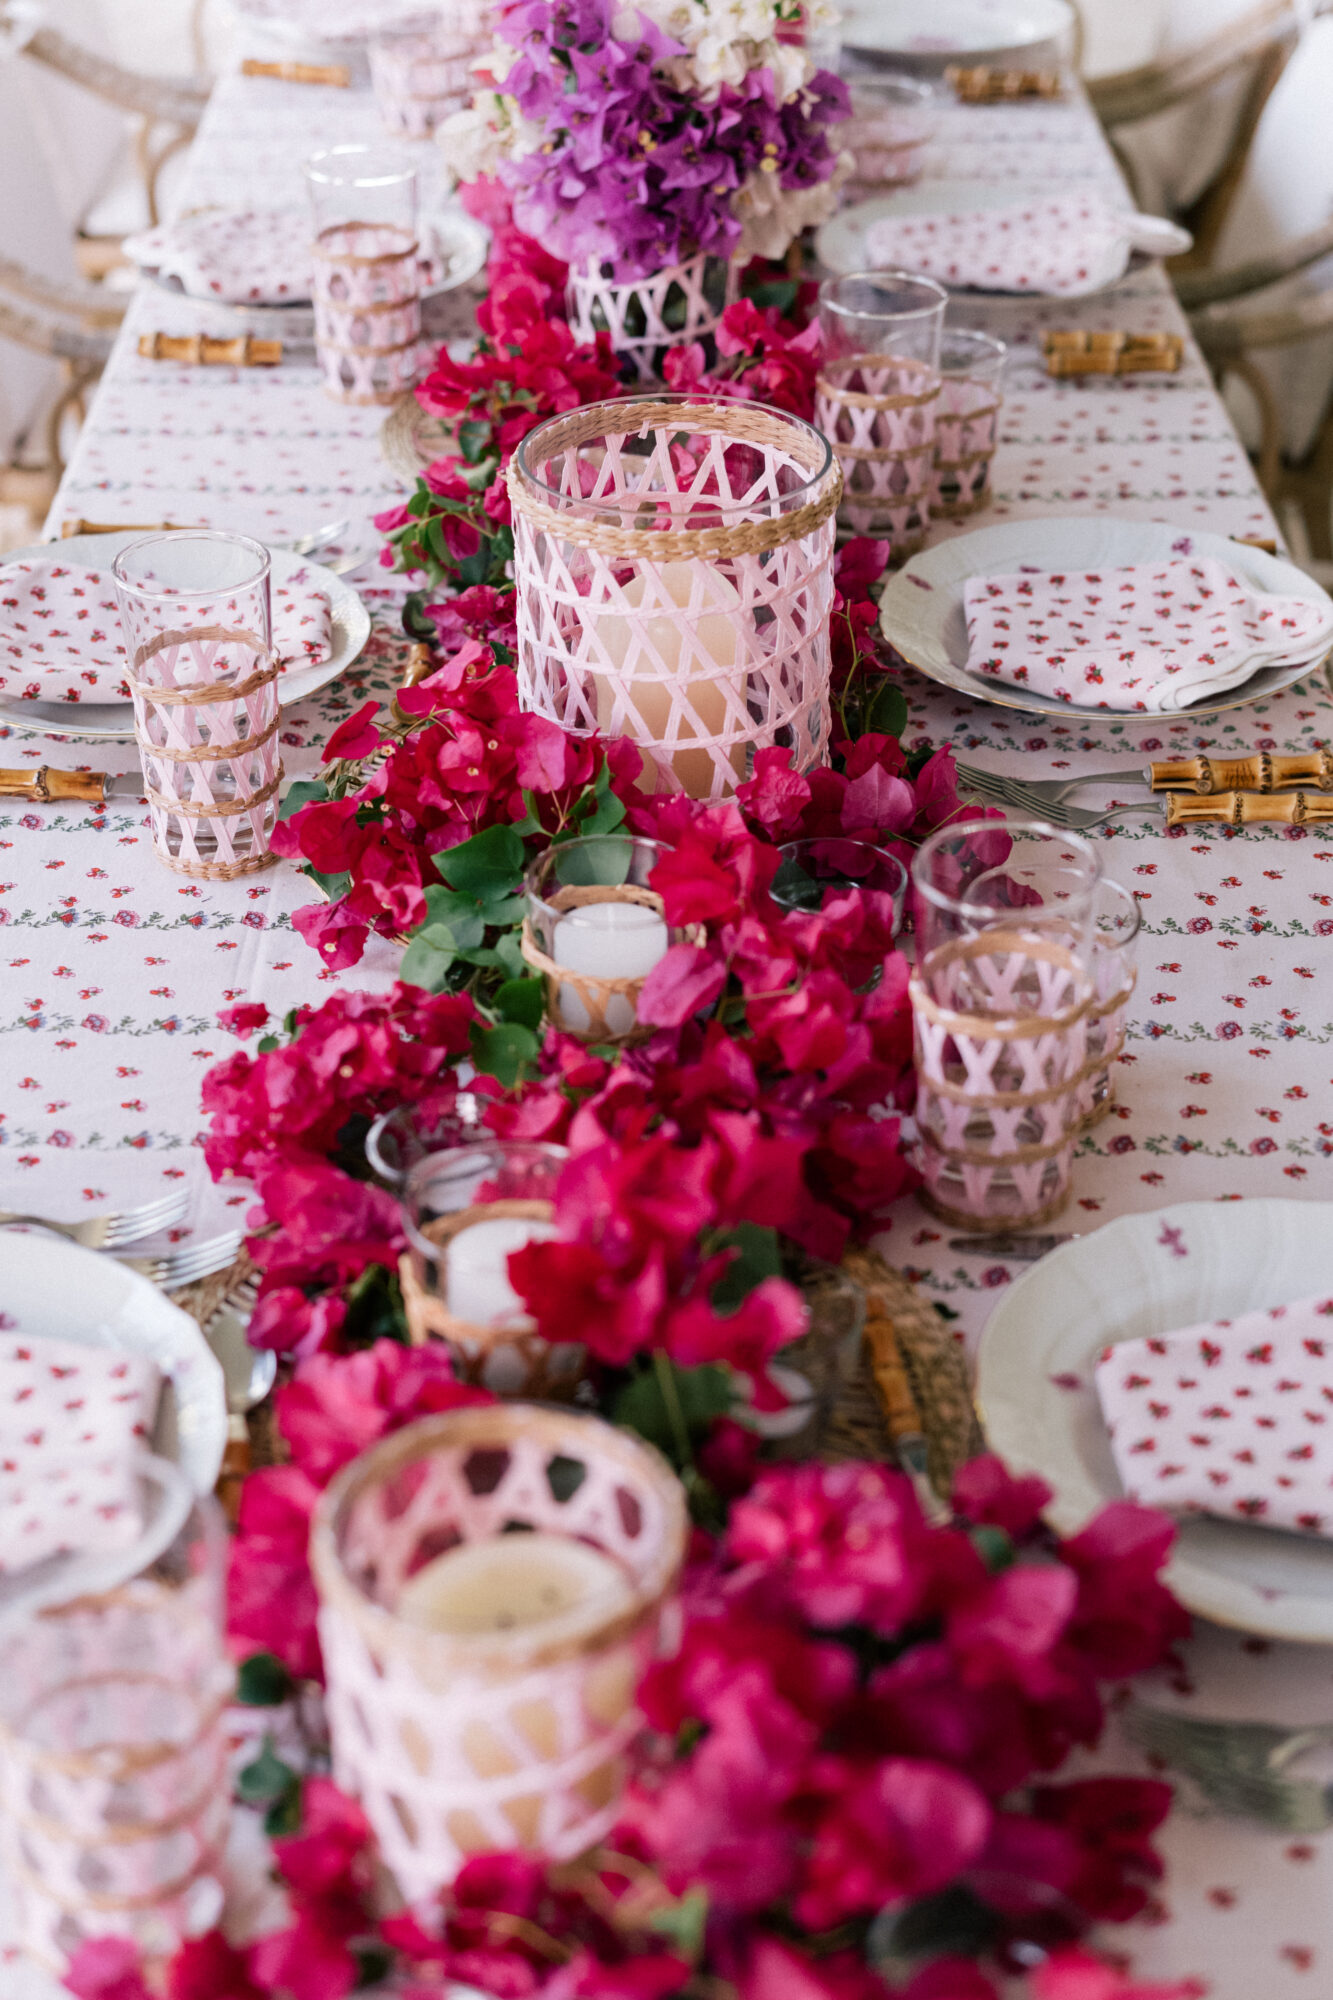 The set table beams with florals and stunning decor pieces.